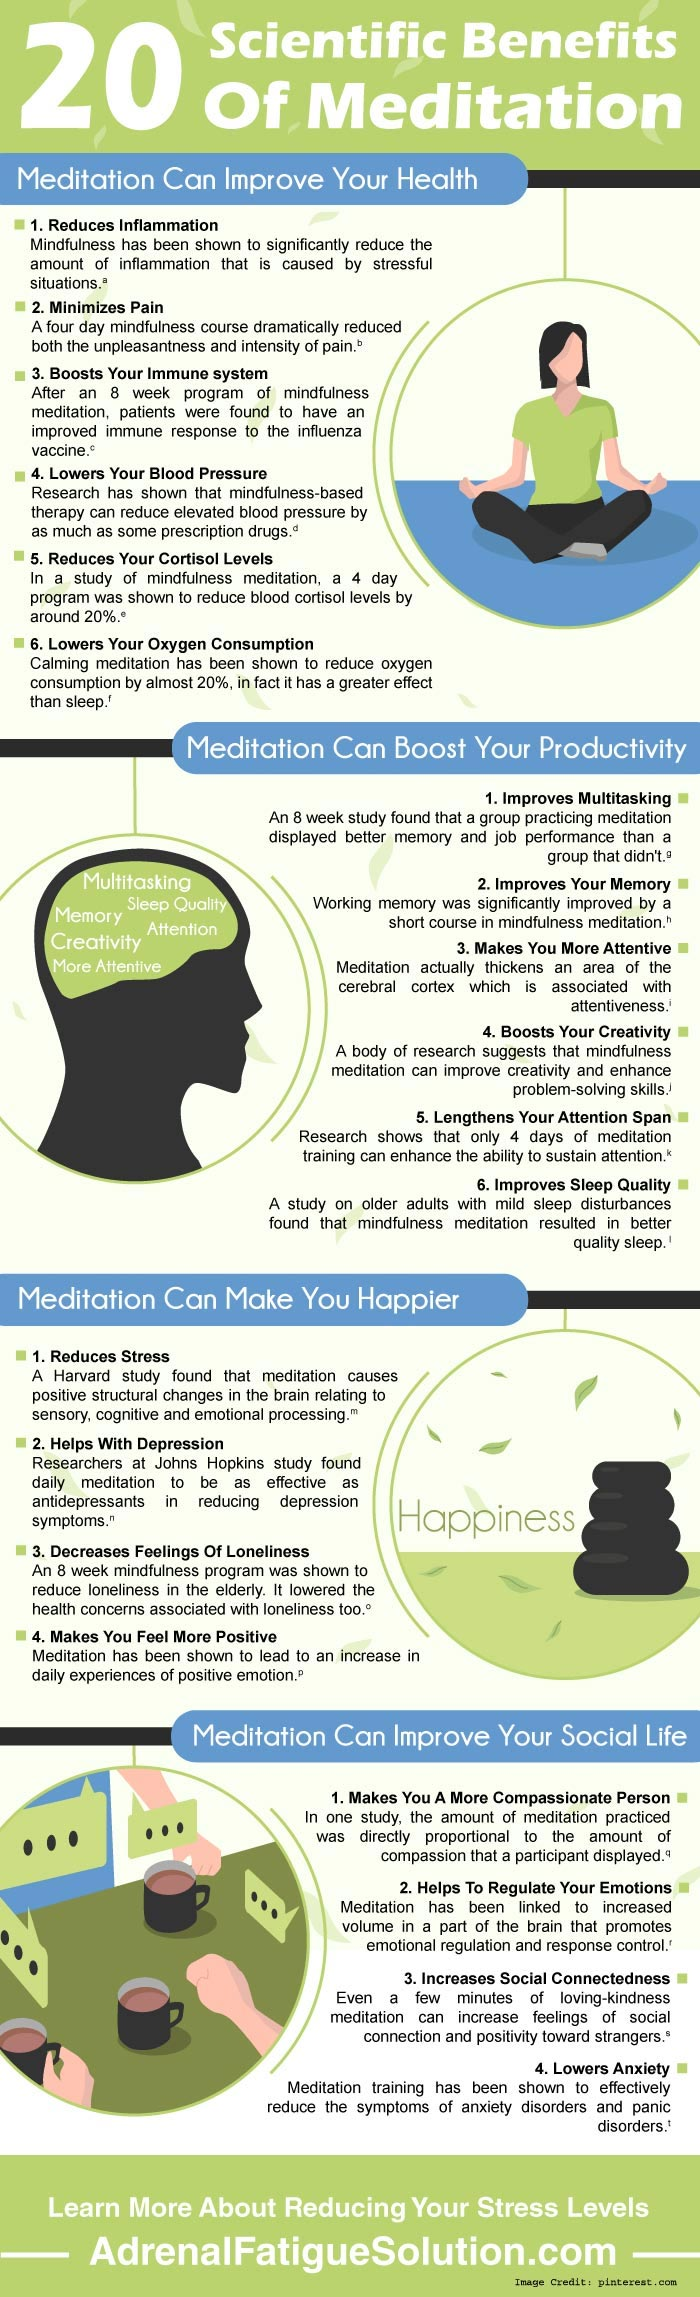 Meditate For Stress Relief Info